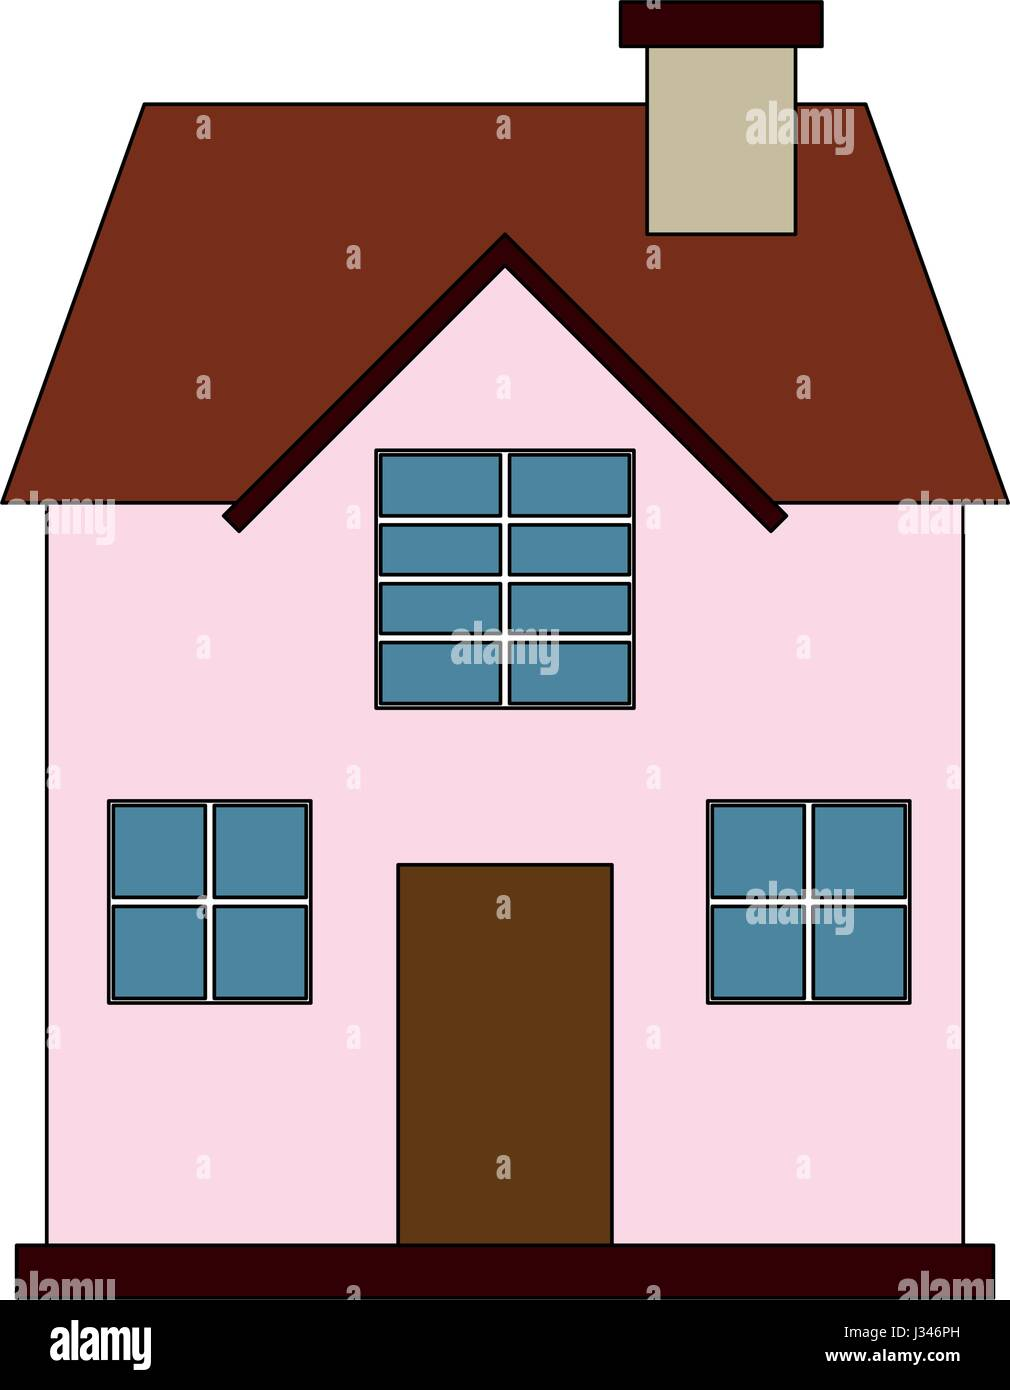 color image cartoon facade confortable house with two floors Stock ...